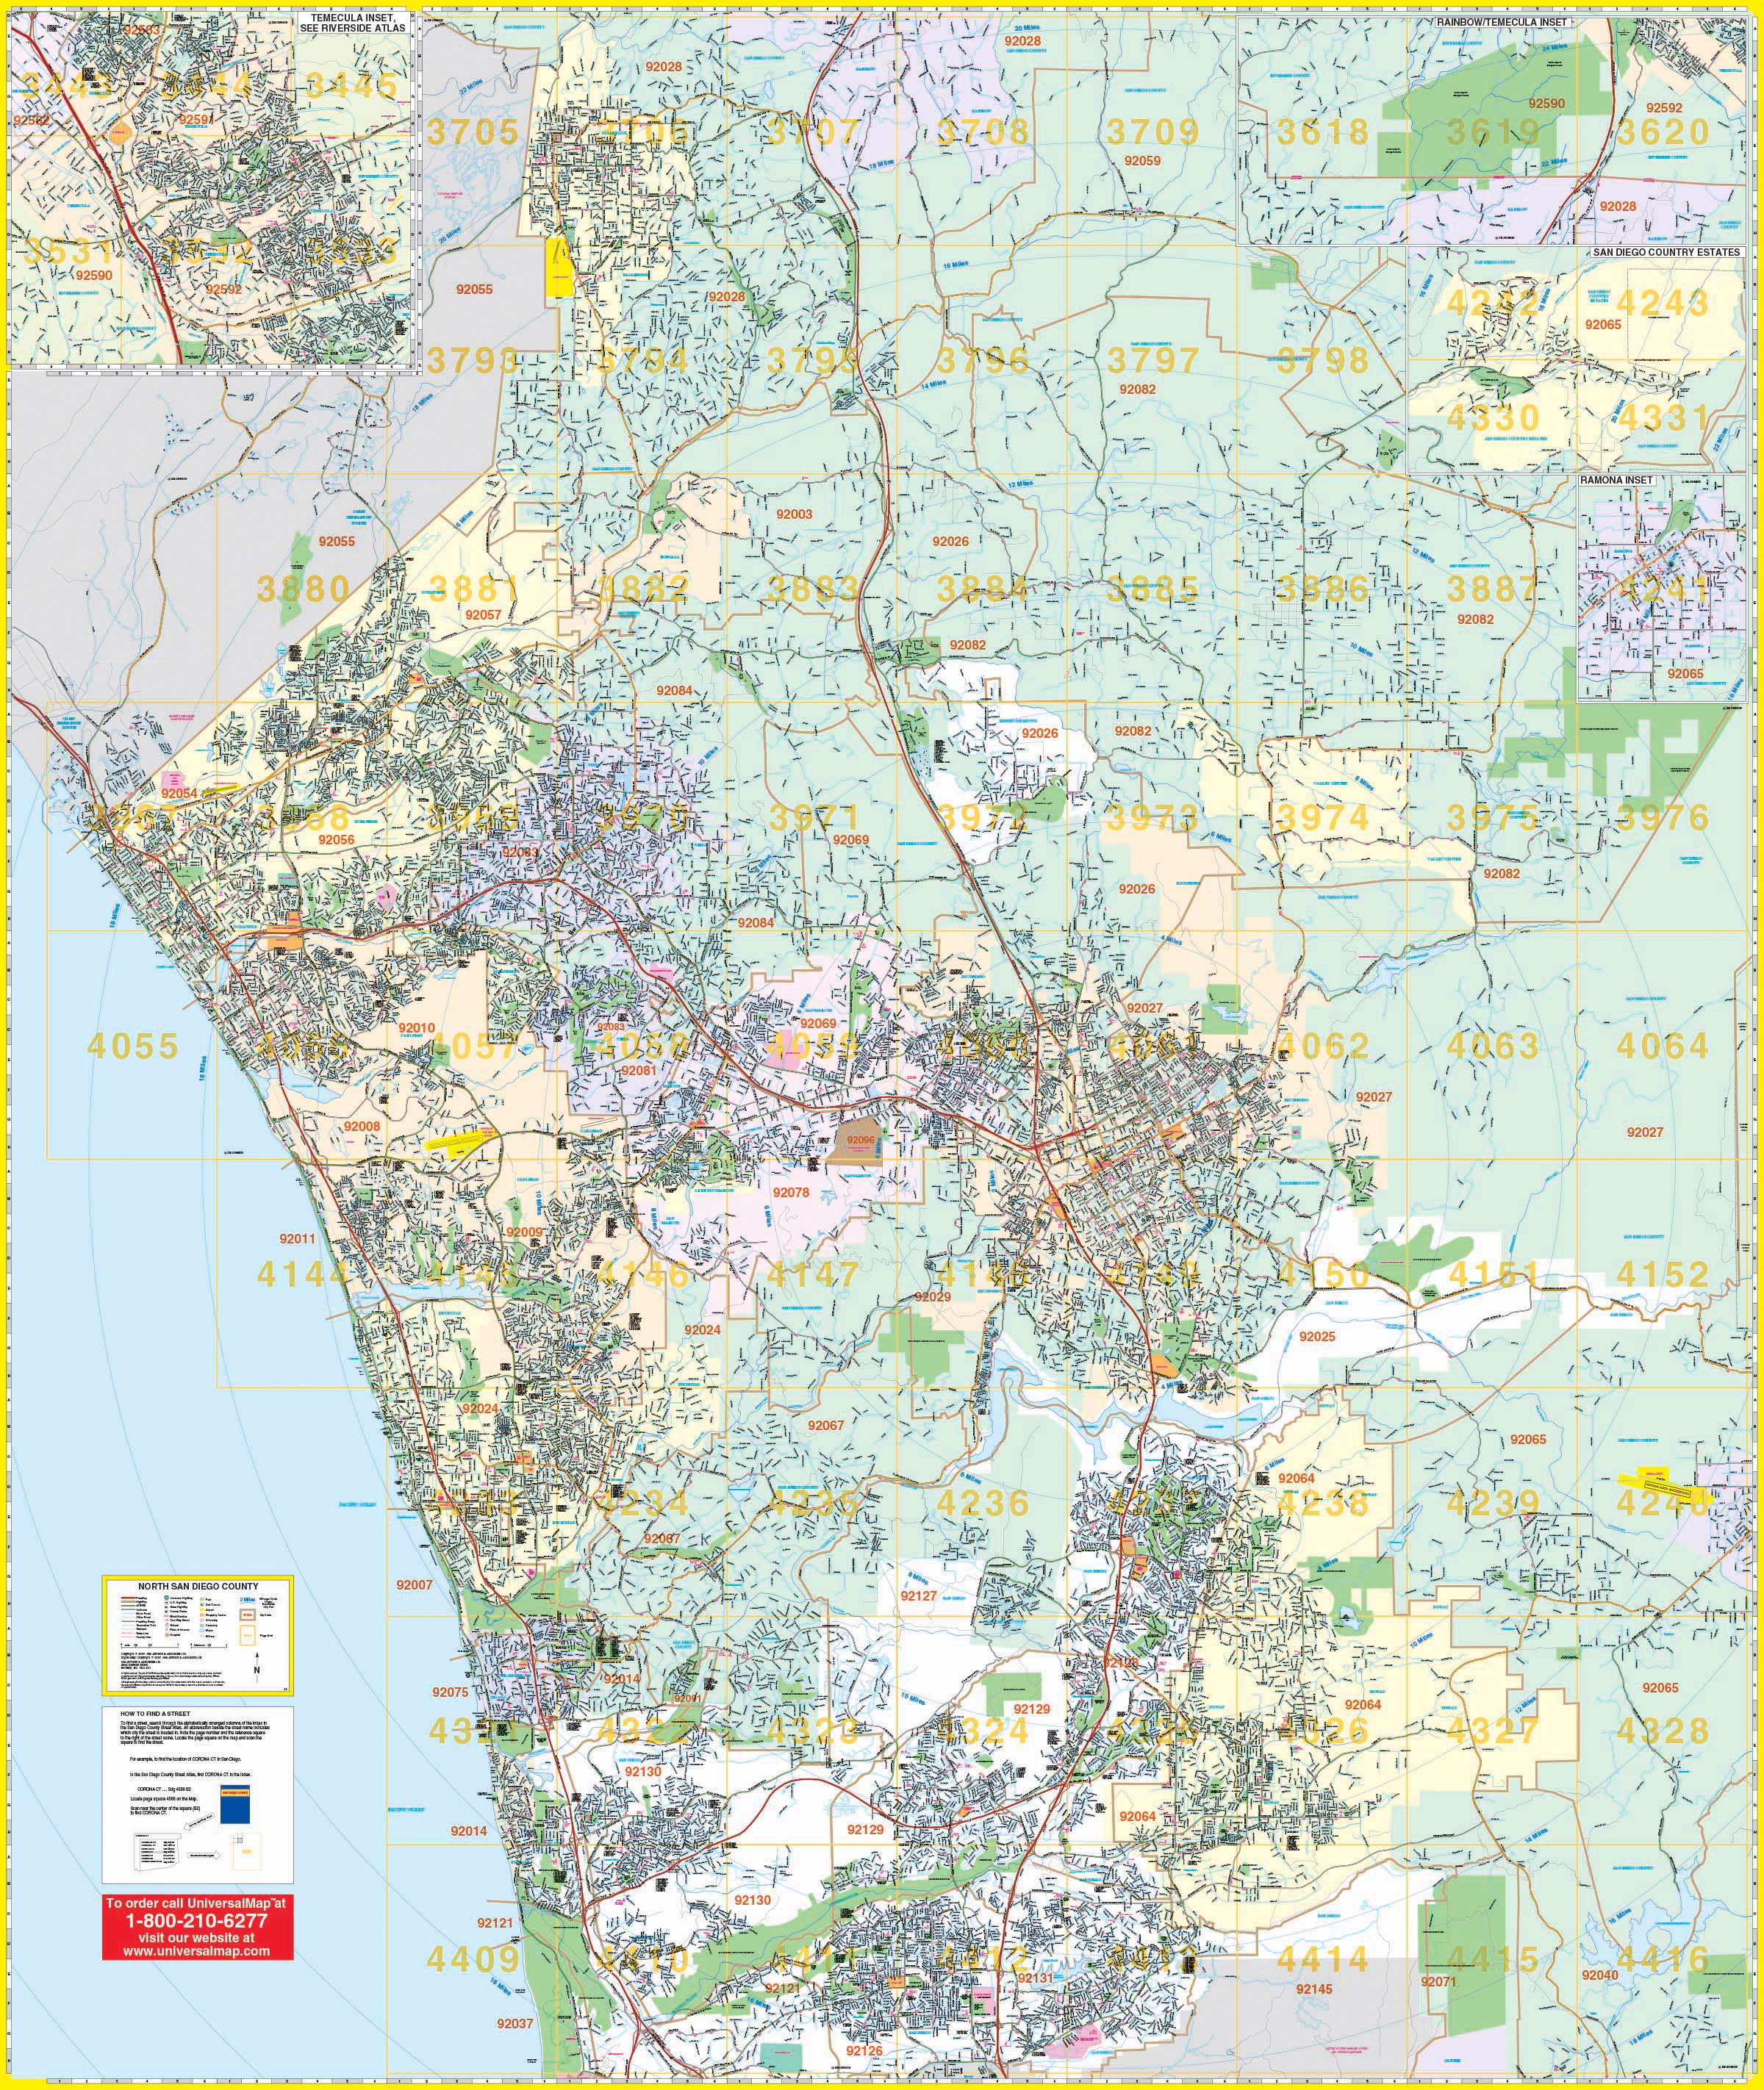 San Diego, CA North Wall Map – KAPPA MAP GROUP